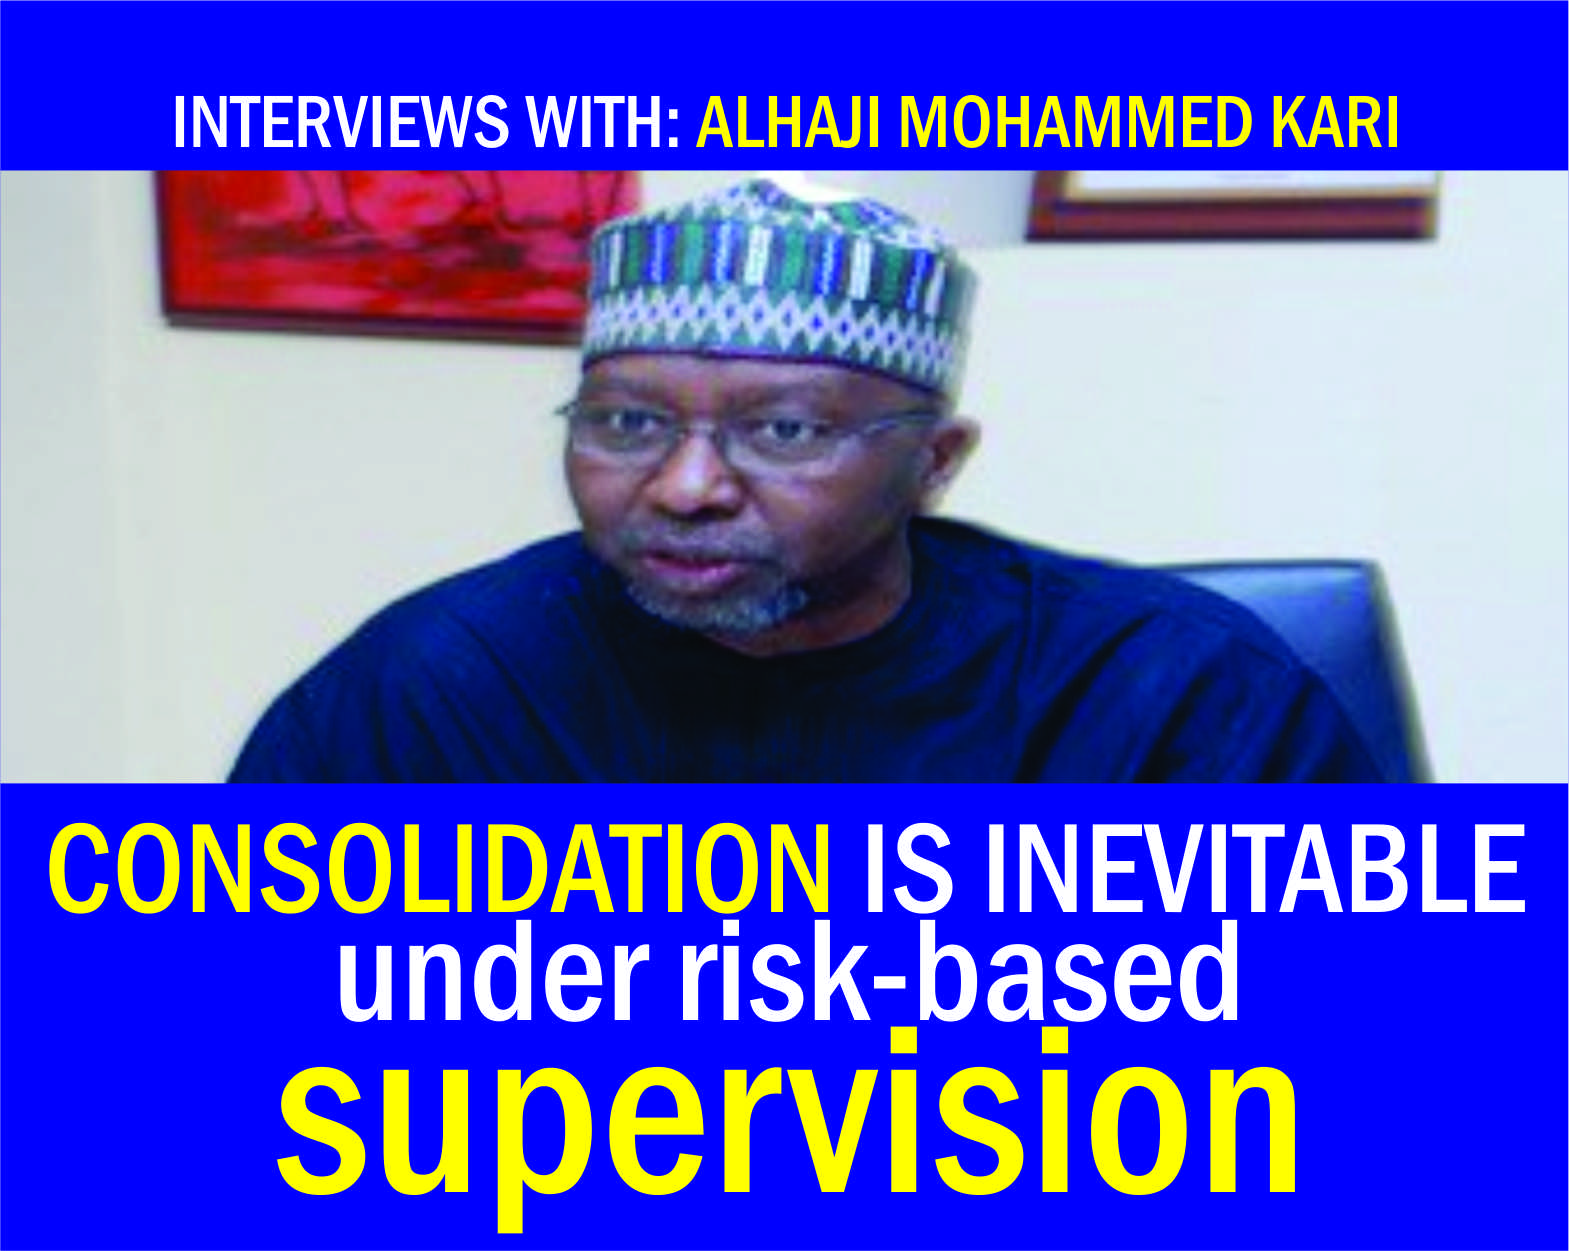 Interview with Alhaji Mohammed Kari